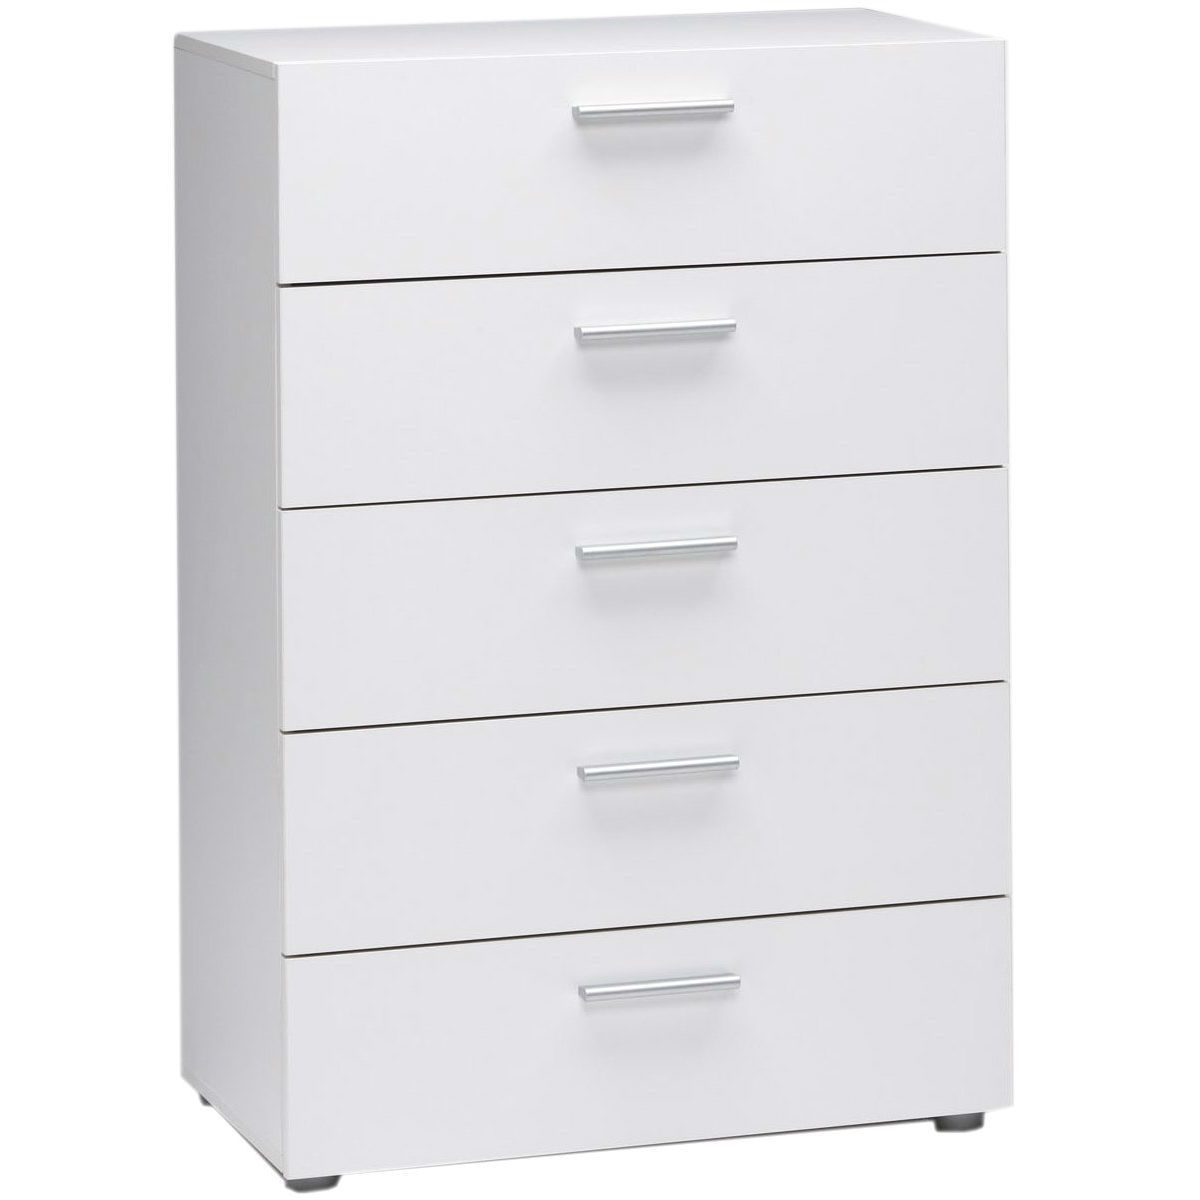 Contemporary 5 Drawer Bedroom Storage Dresser Chest In White With Images Chest Of Drawers Bedroom Furniture Stores Drawers